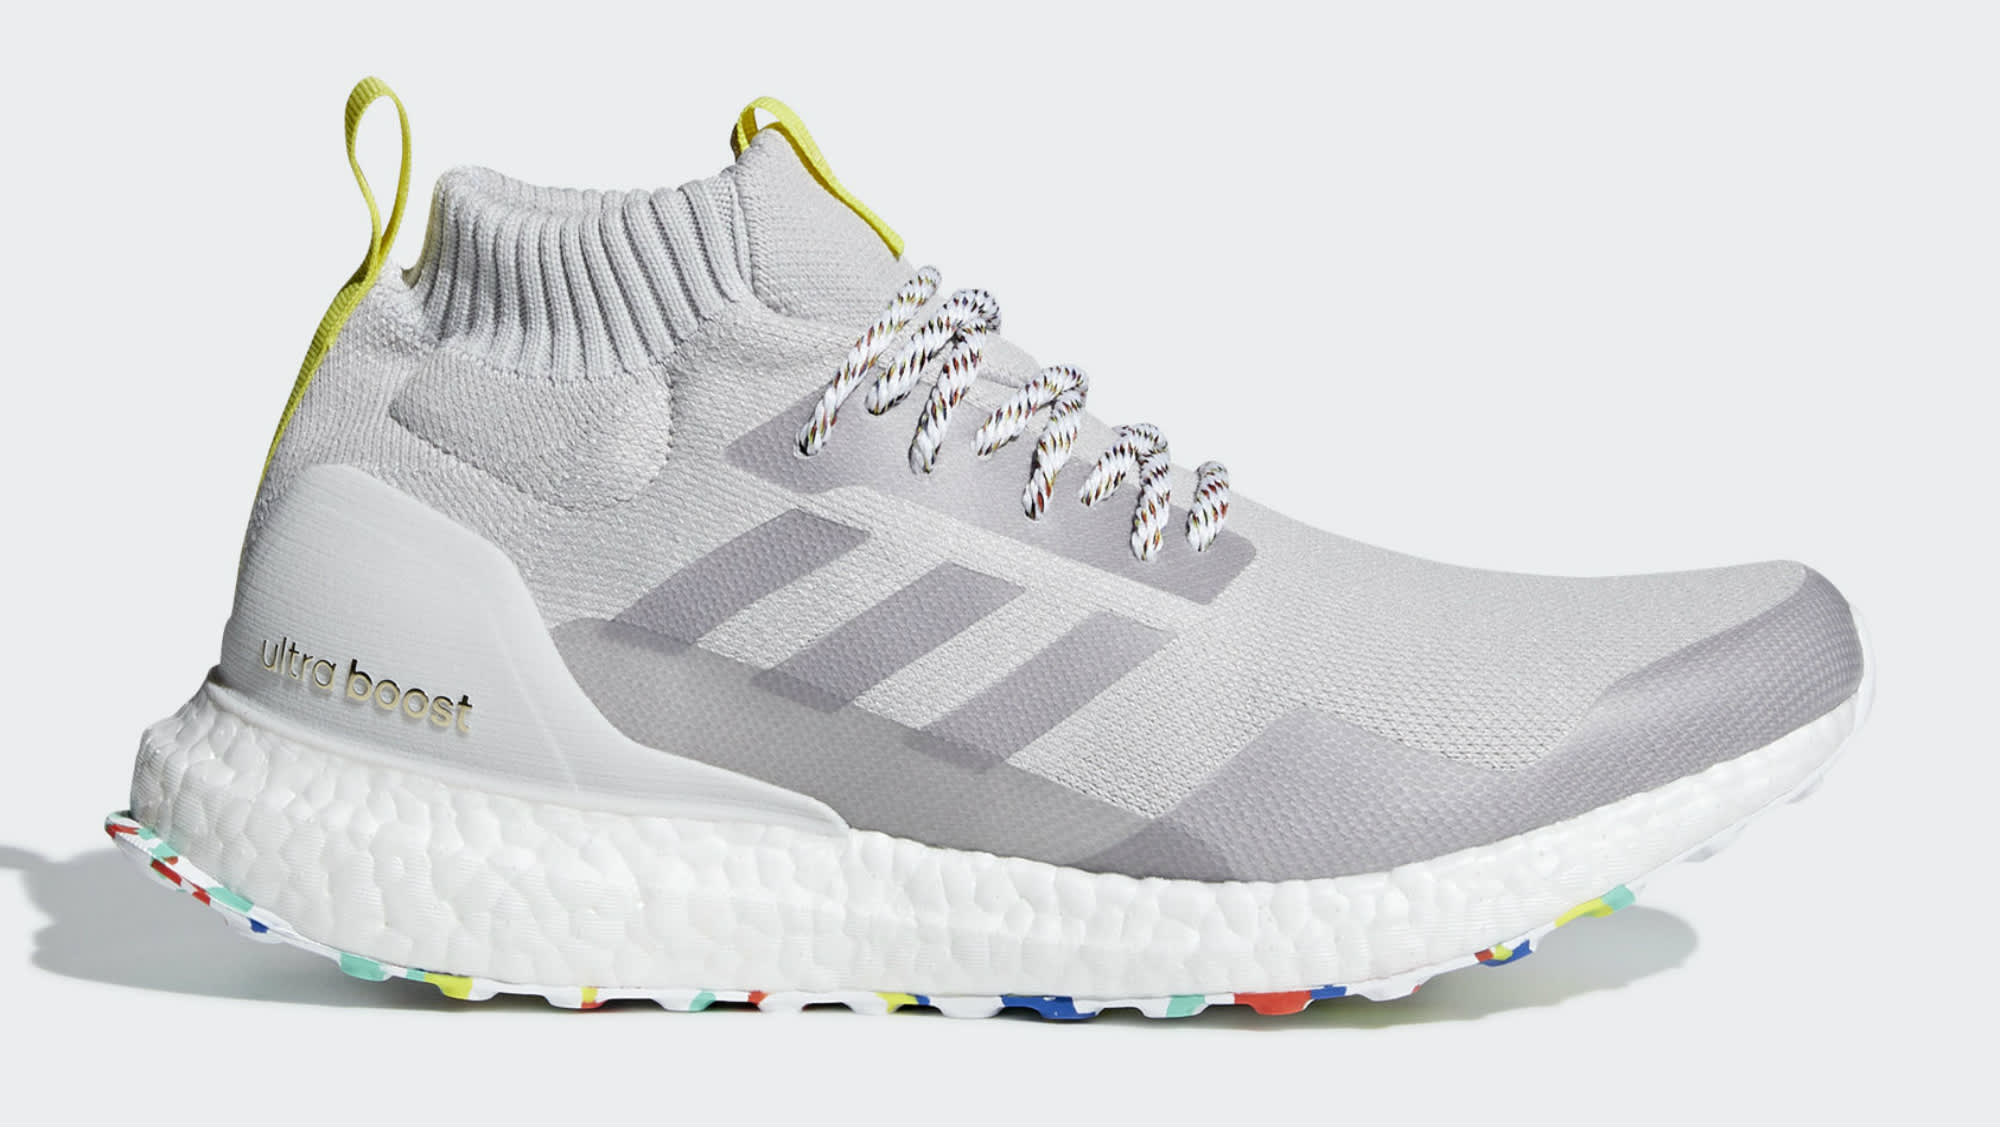 adidas-ultra-boost-mid-white-multicolor-g26842-release-date